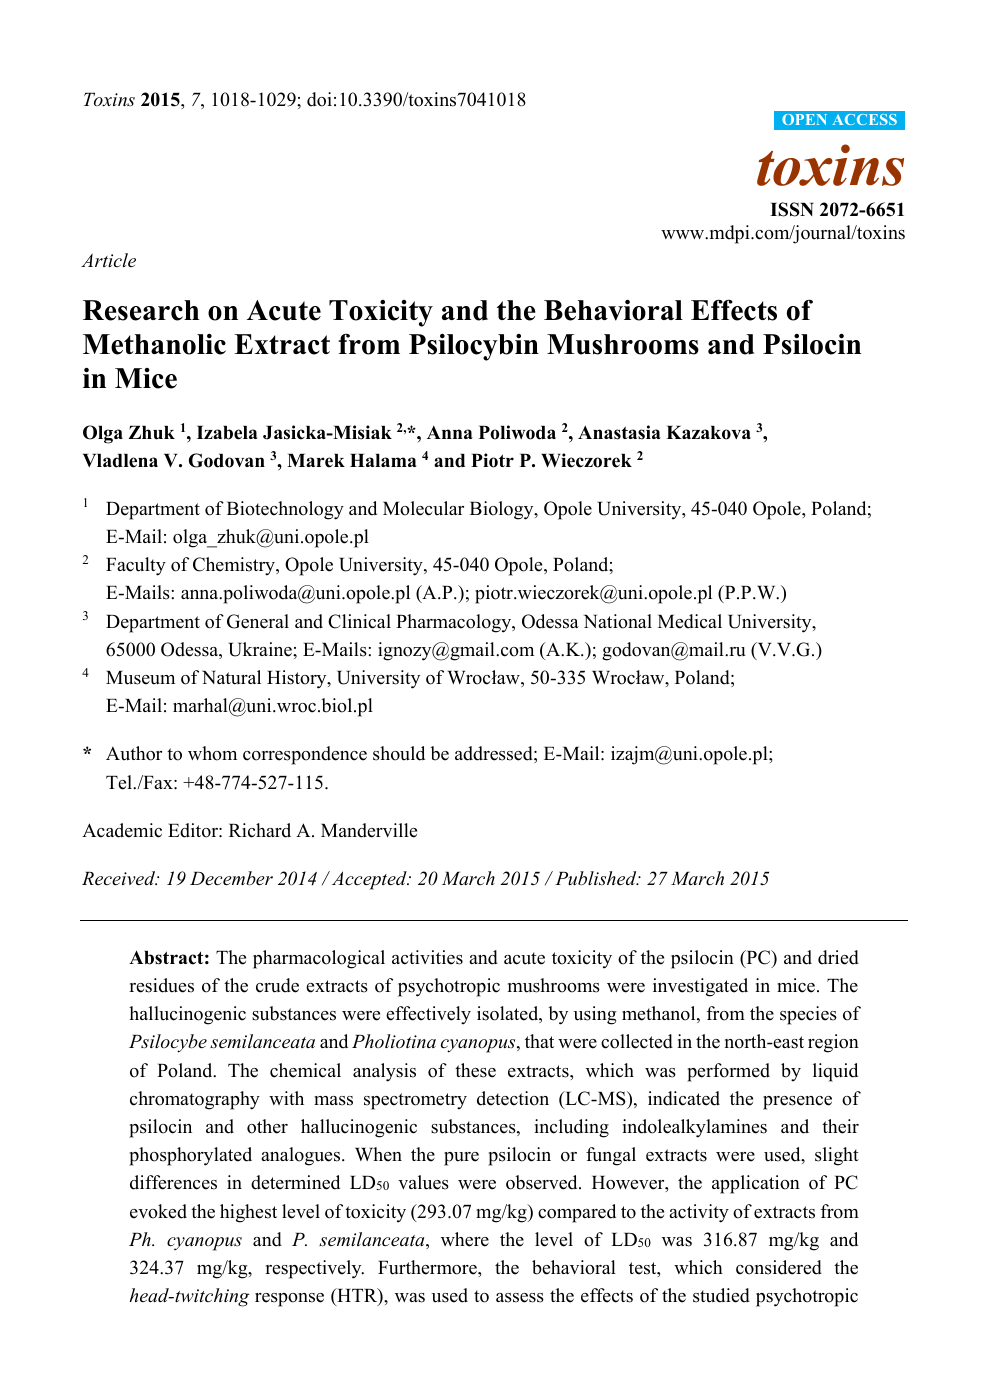 Research on Acute Toxicity and the Behavioral Effects of